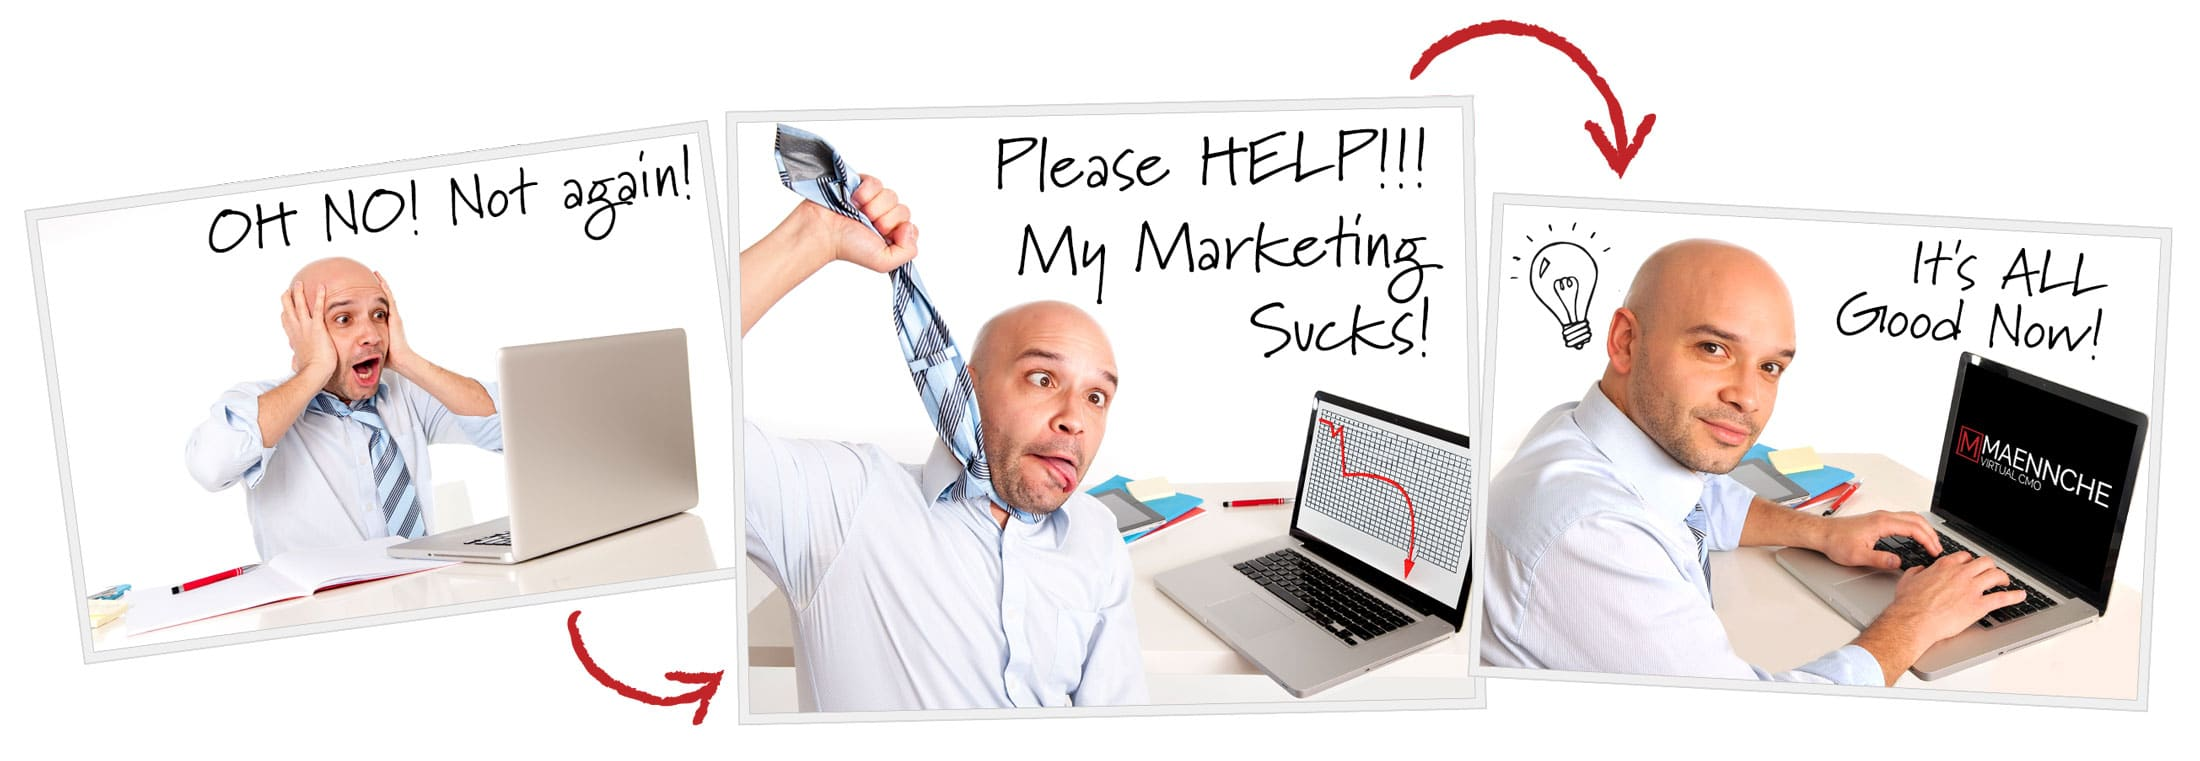 Does Your Marketing Suck!